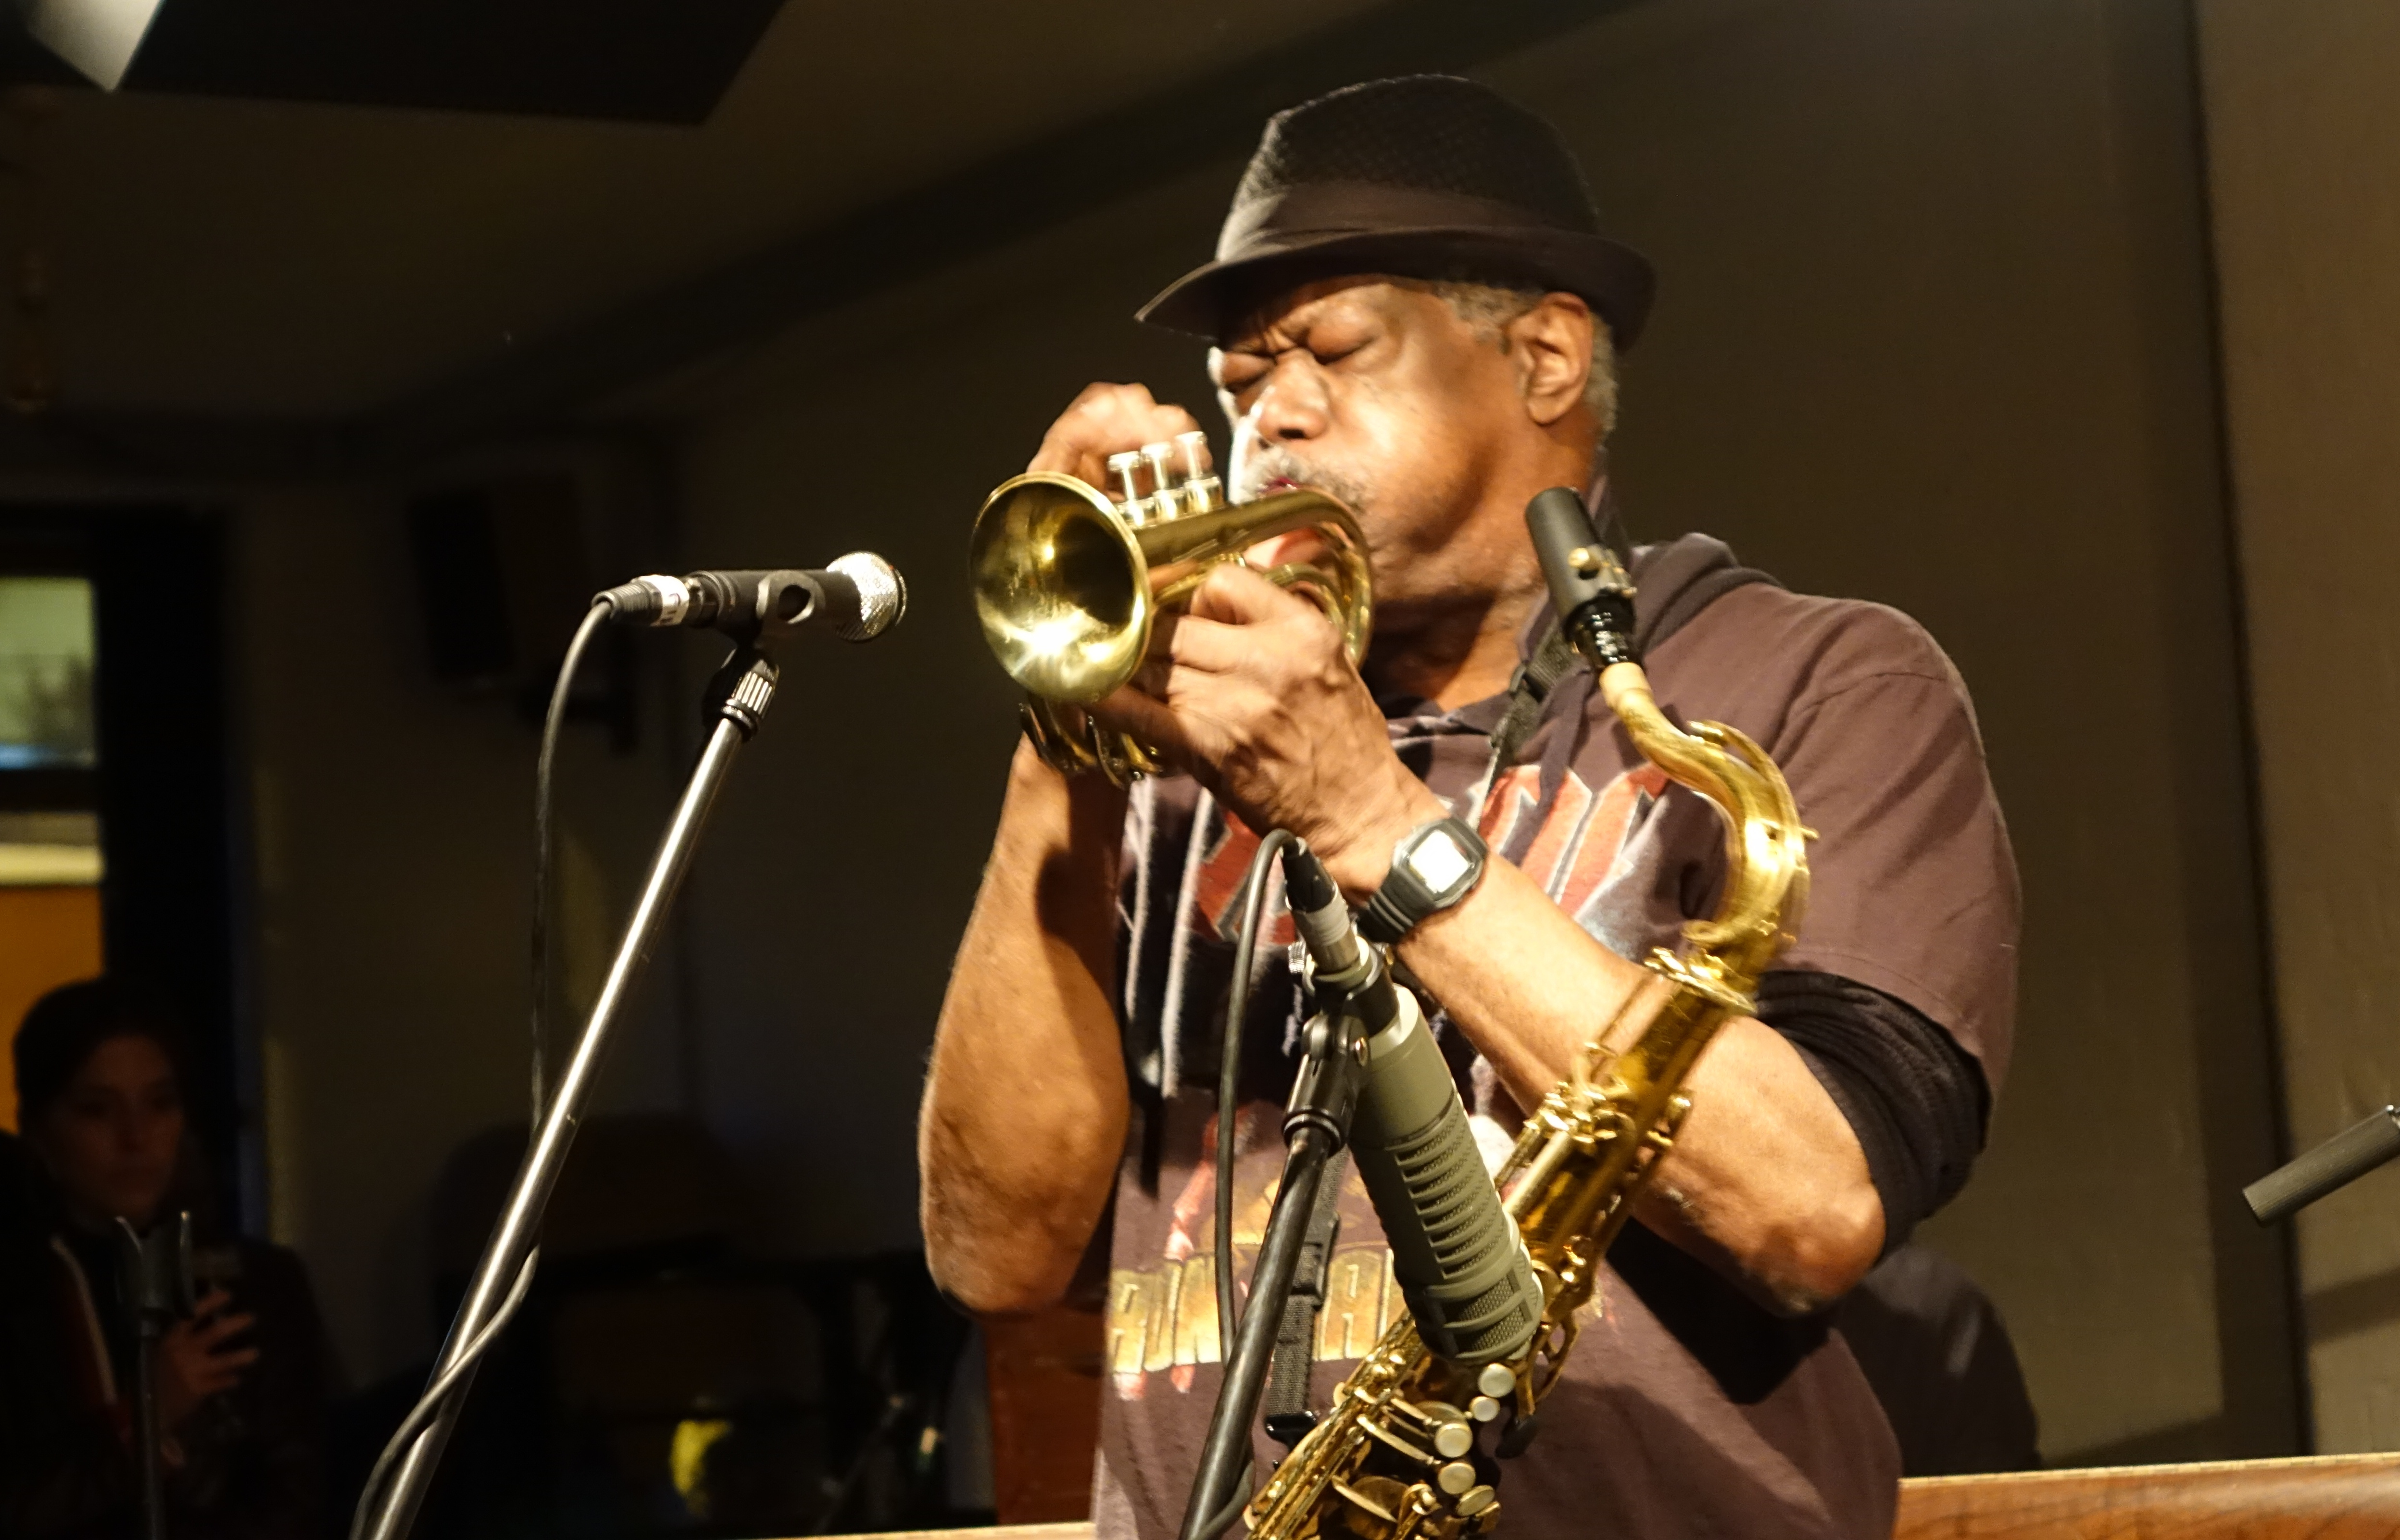 Joe McPhee at Cafe Oto, London in May 2019